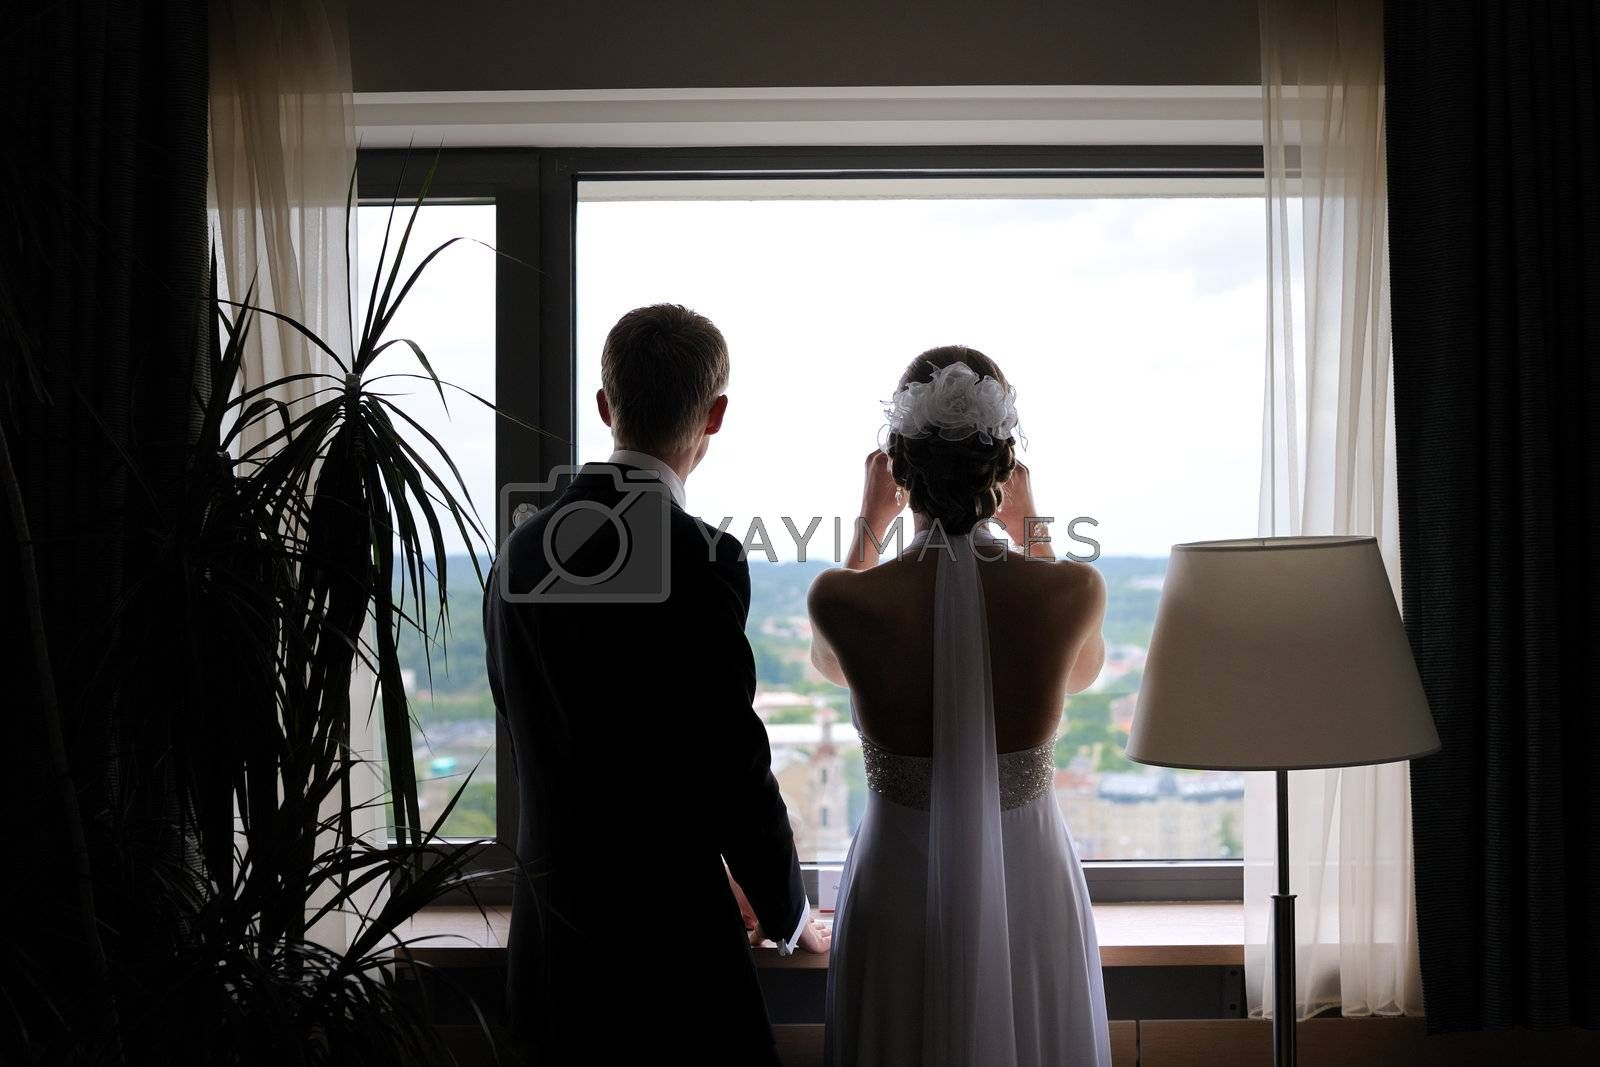 Bride and groom are standing agains the window looking at the city